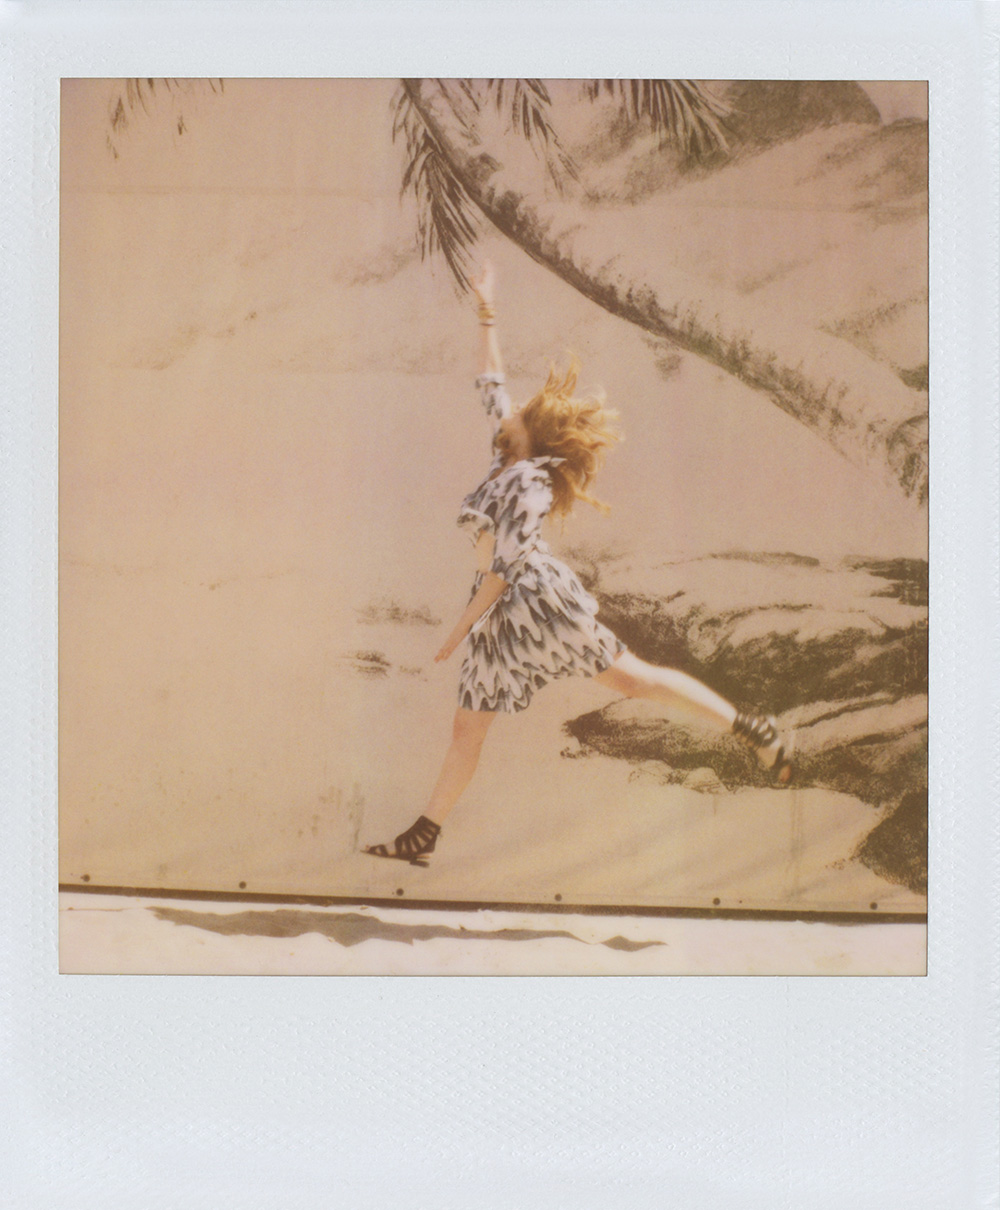 band-of-outsiders-greta-gerwig-polaroids-03